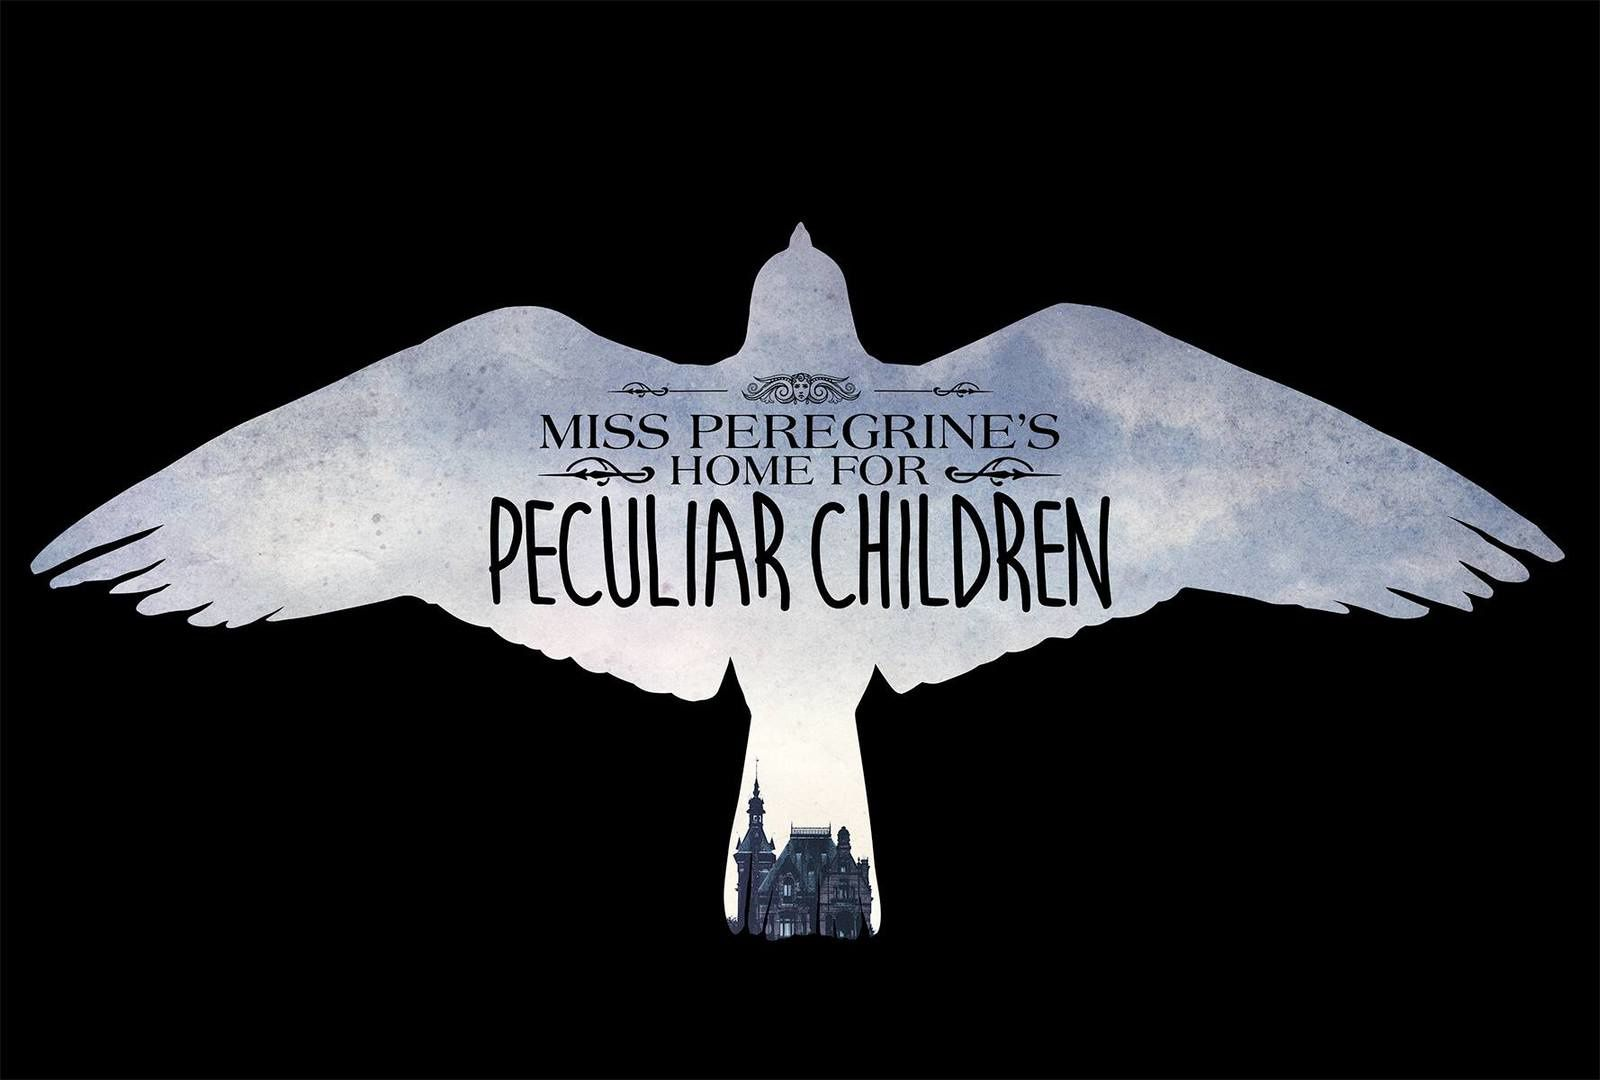 Quelle: http://cdn2-www.comingsoon.net/assets/uploads/gallery/miss-peregrines-home-for-peculiar-children/11792165_10153491949883633_1099608705898020516_o.jpg